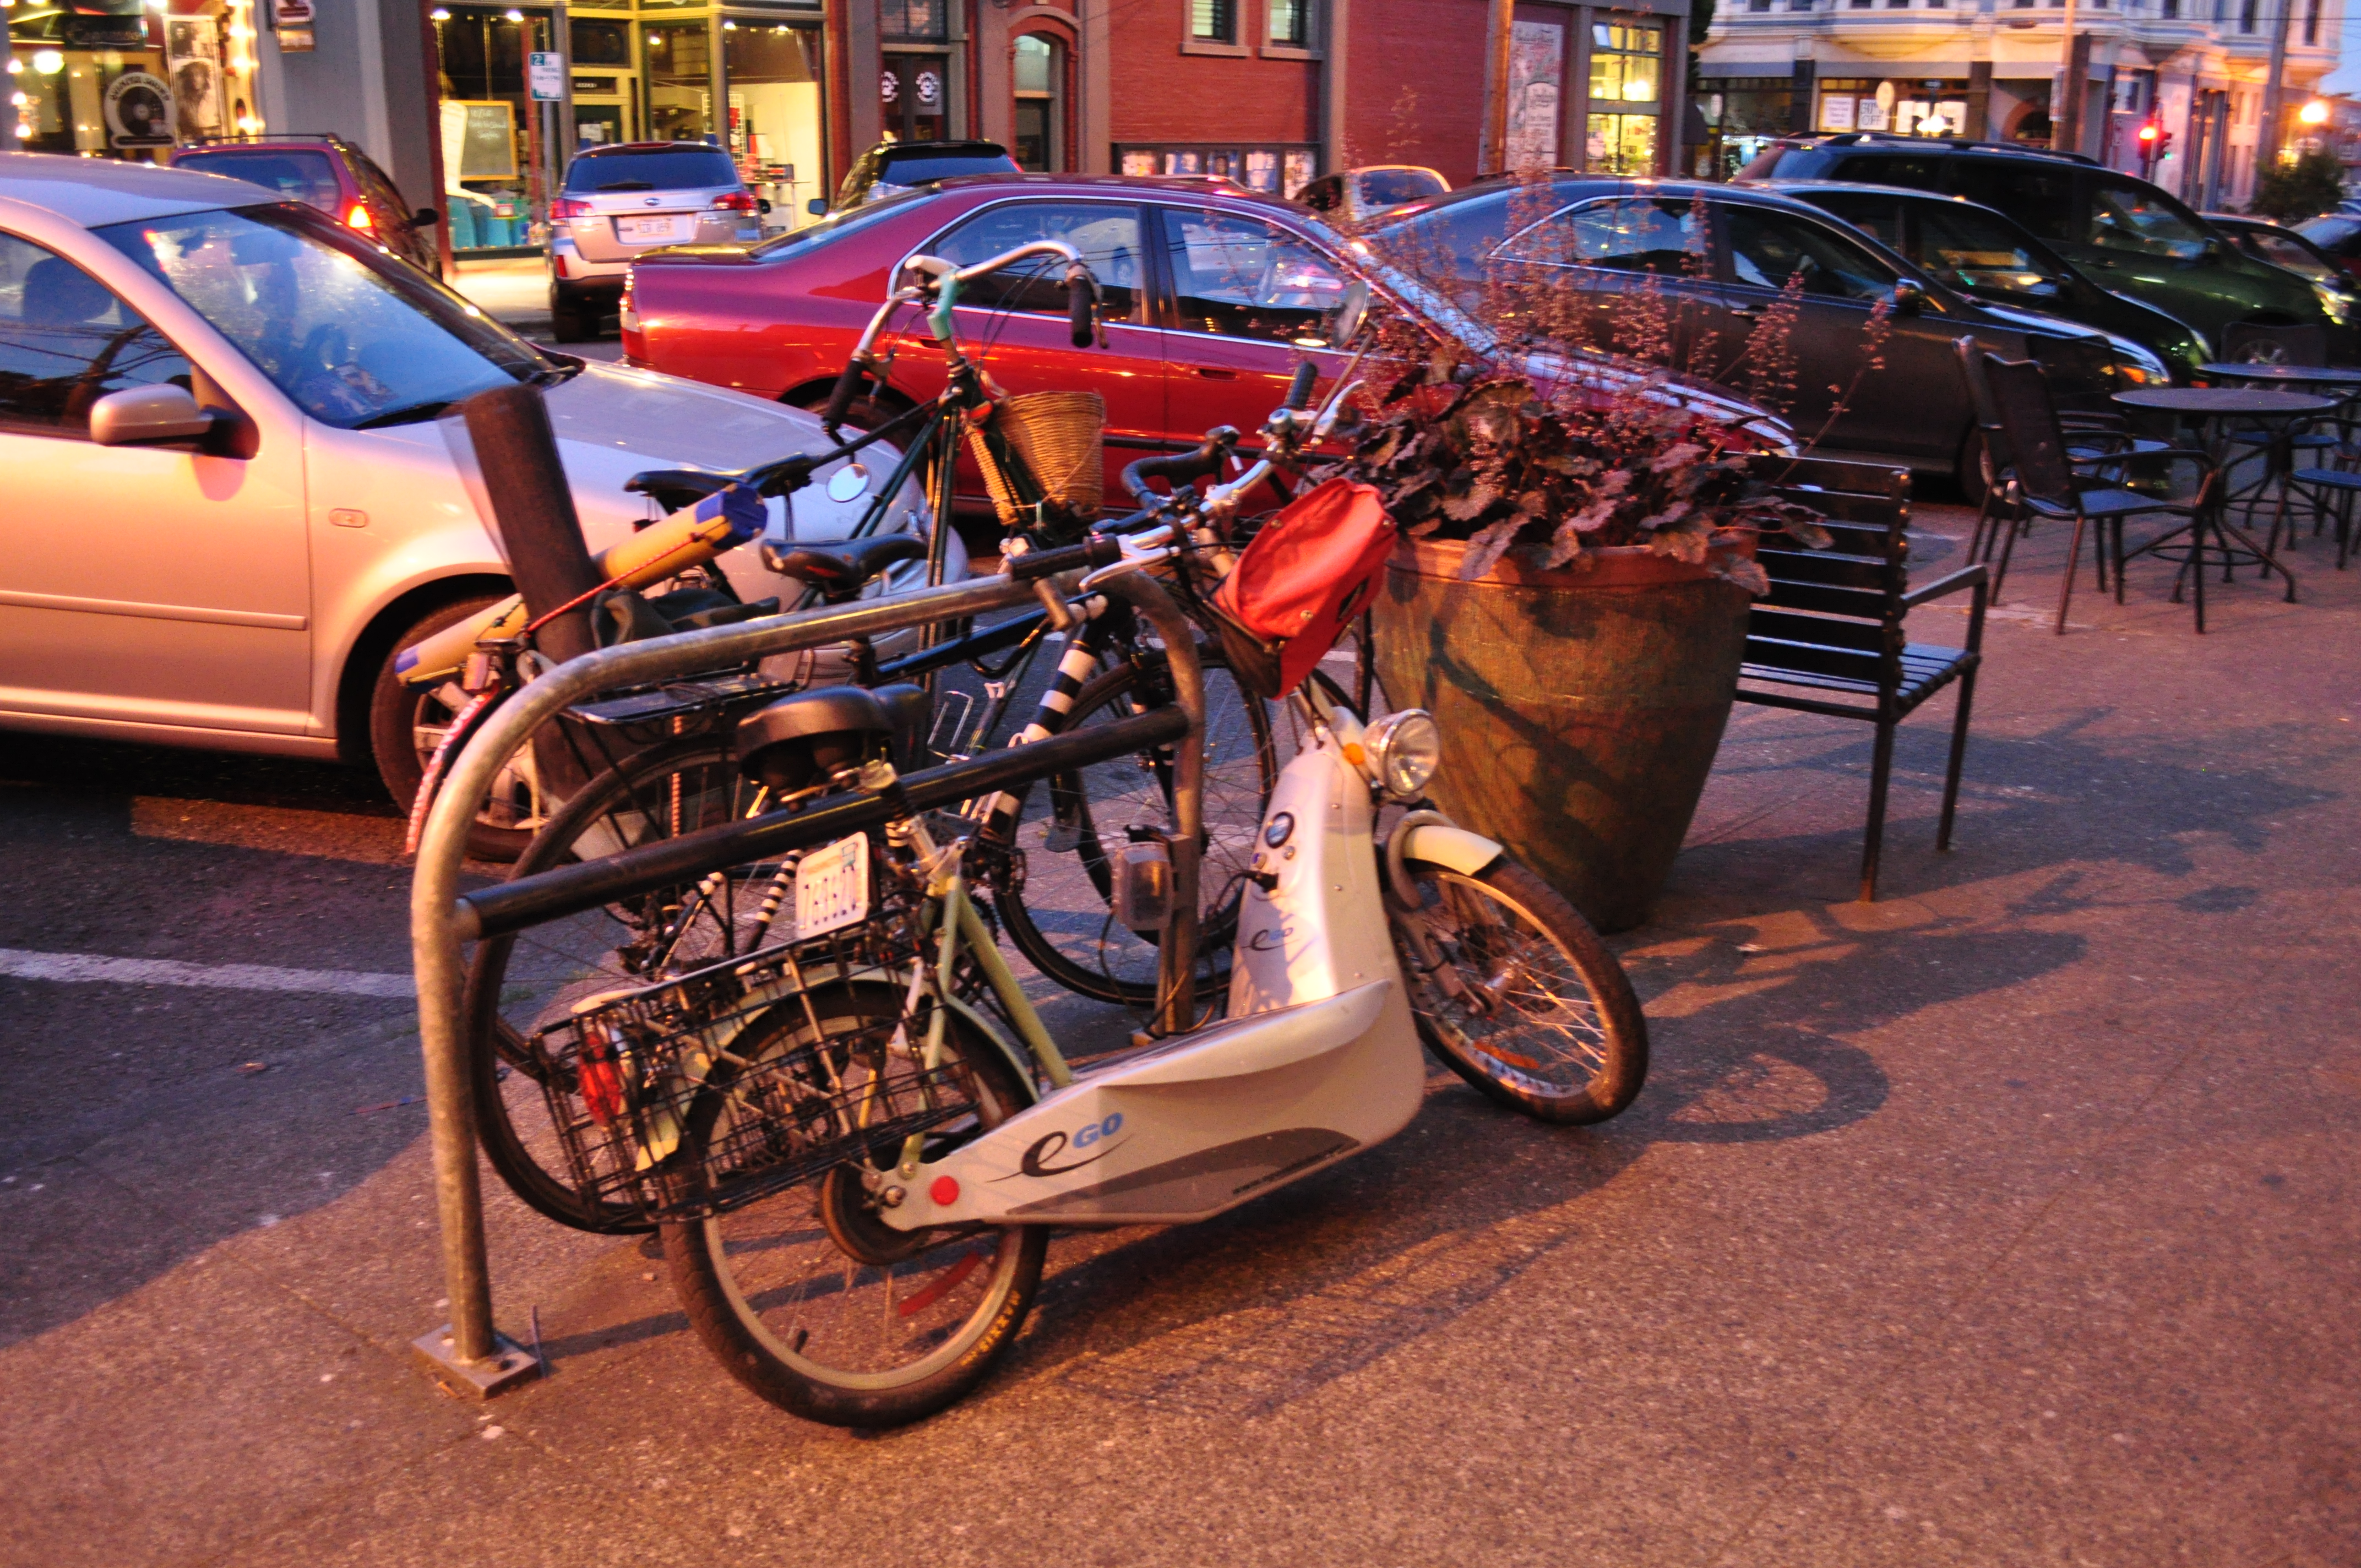 File Scooter Charging At Curbside Bike Rack Jpg Wikimedia Commons